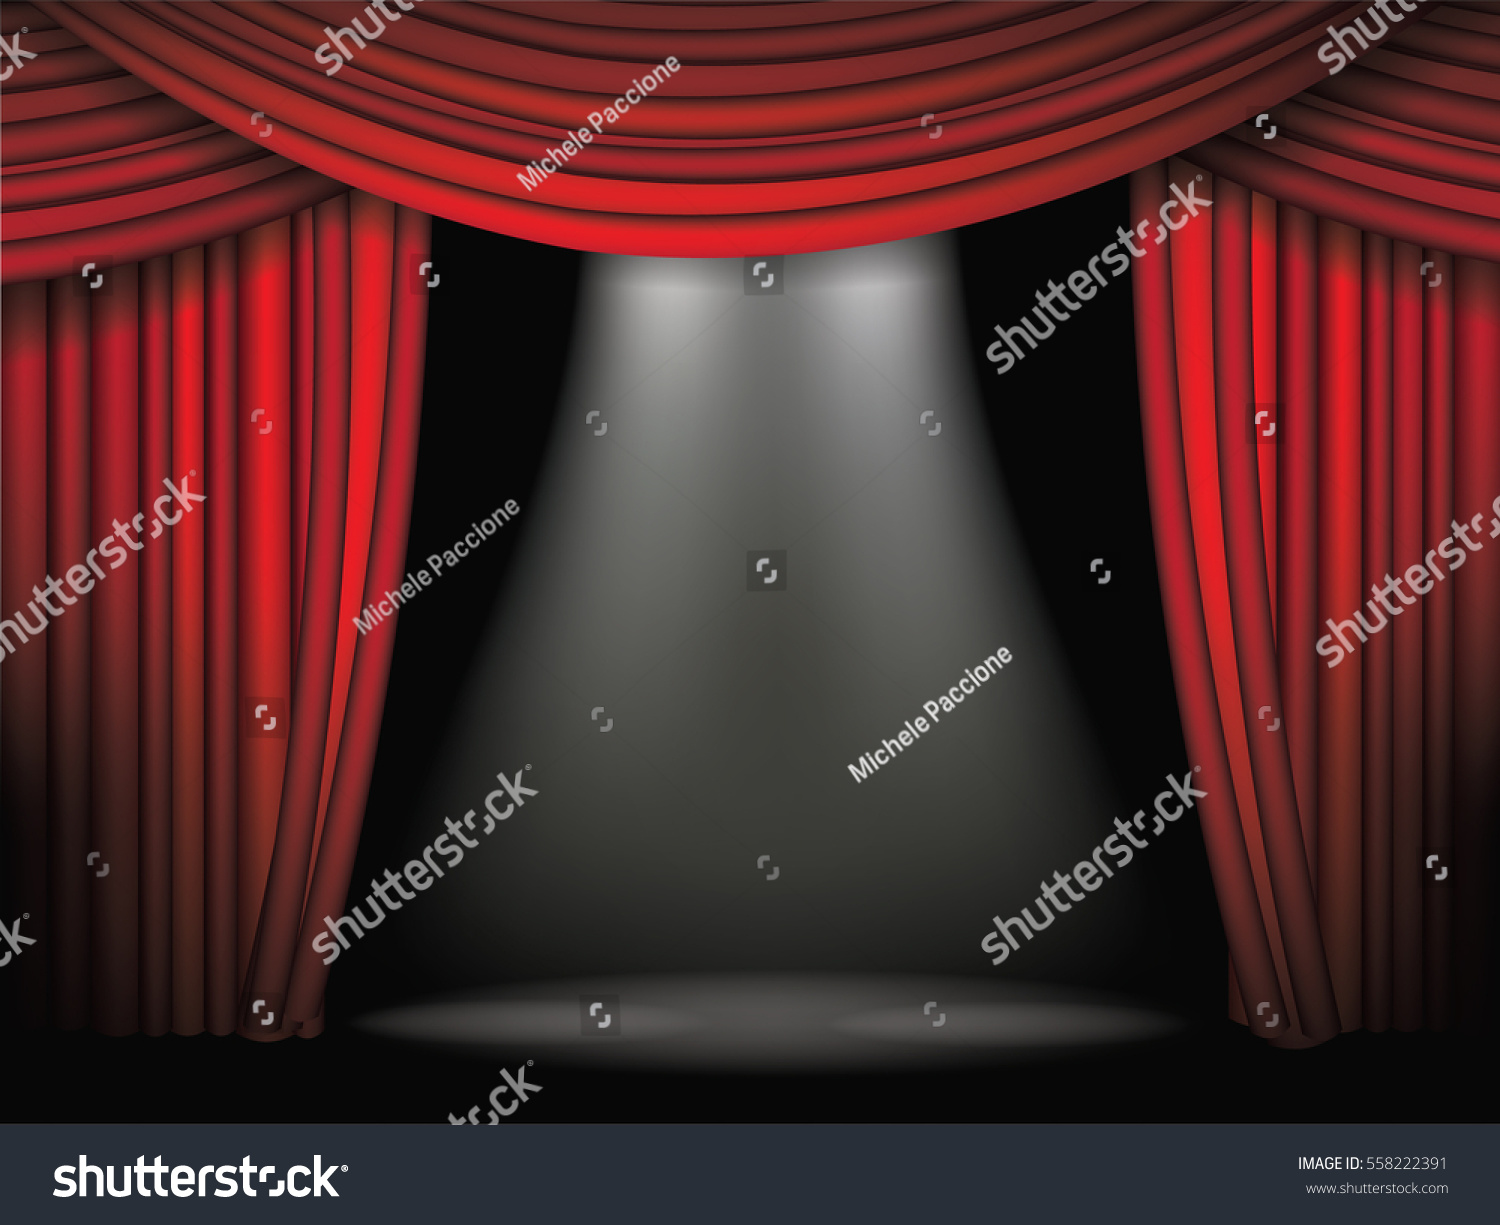 Open stage curtains - Luxurious Red Curtains Background Template Grand Opening Or Other Event Announcement With Dramatic Movie Or